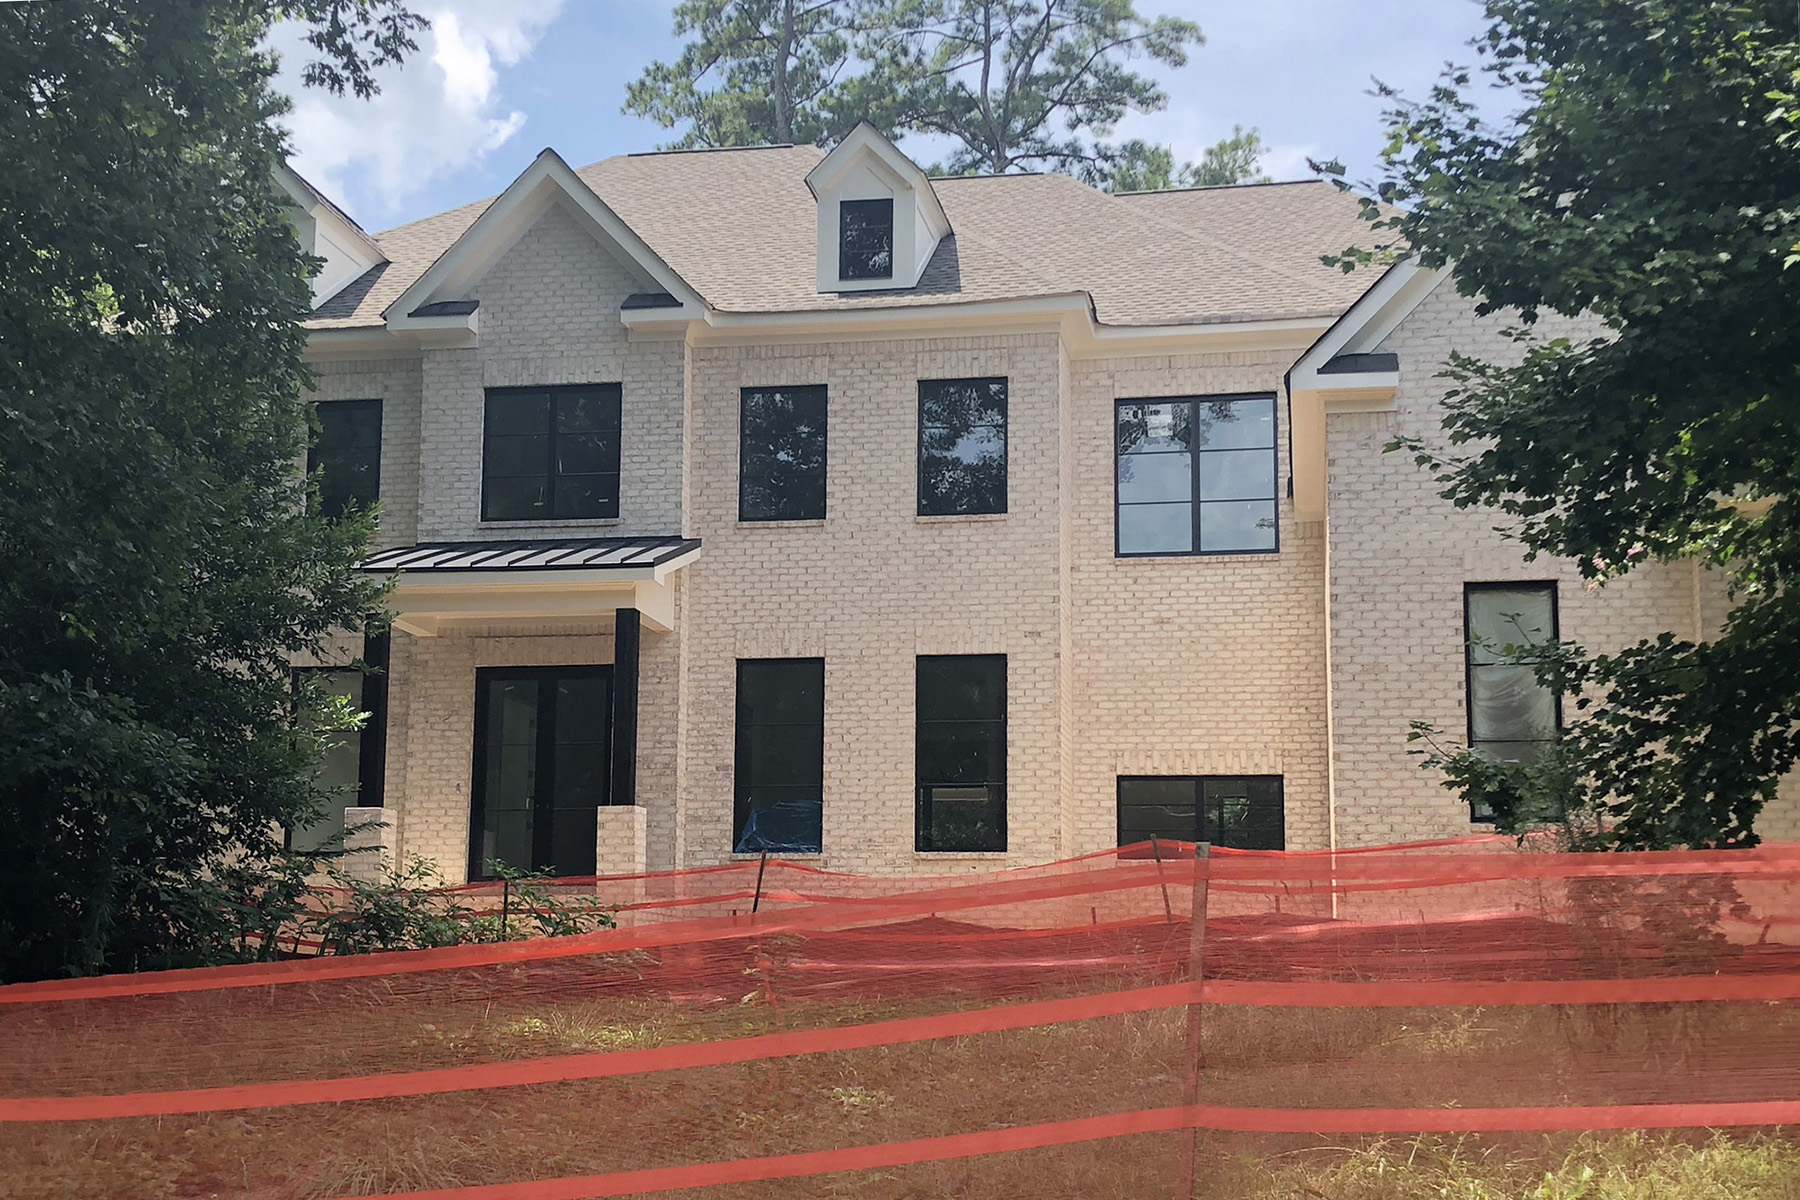 Single Family Home for Sale at Custom New Construction One Block From Chastain Park 4736 Lake Forrest Drive Sandy Springs, Georgia 30342 United States